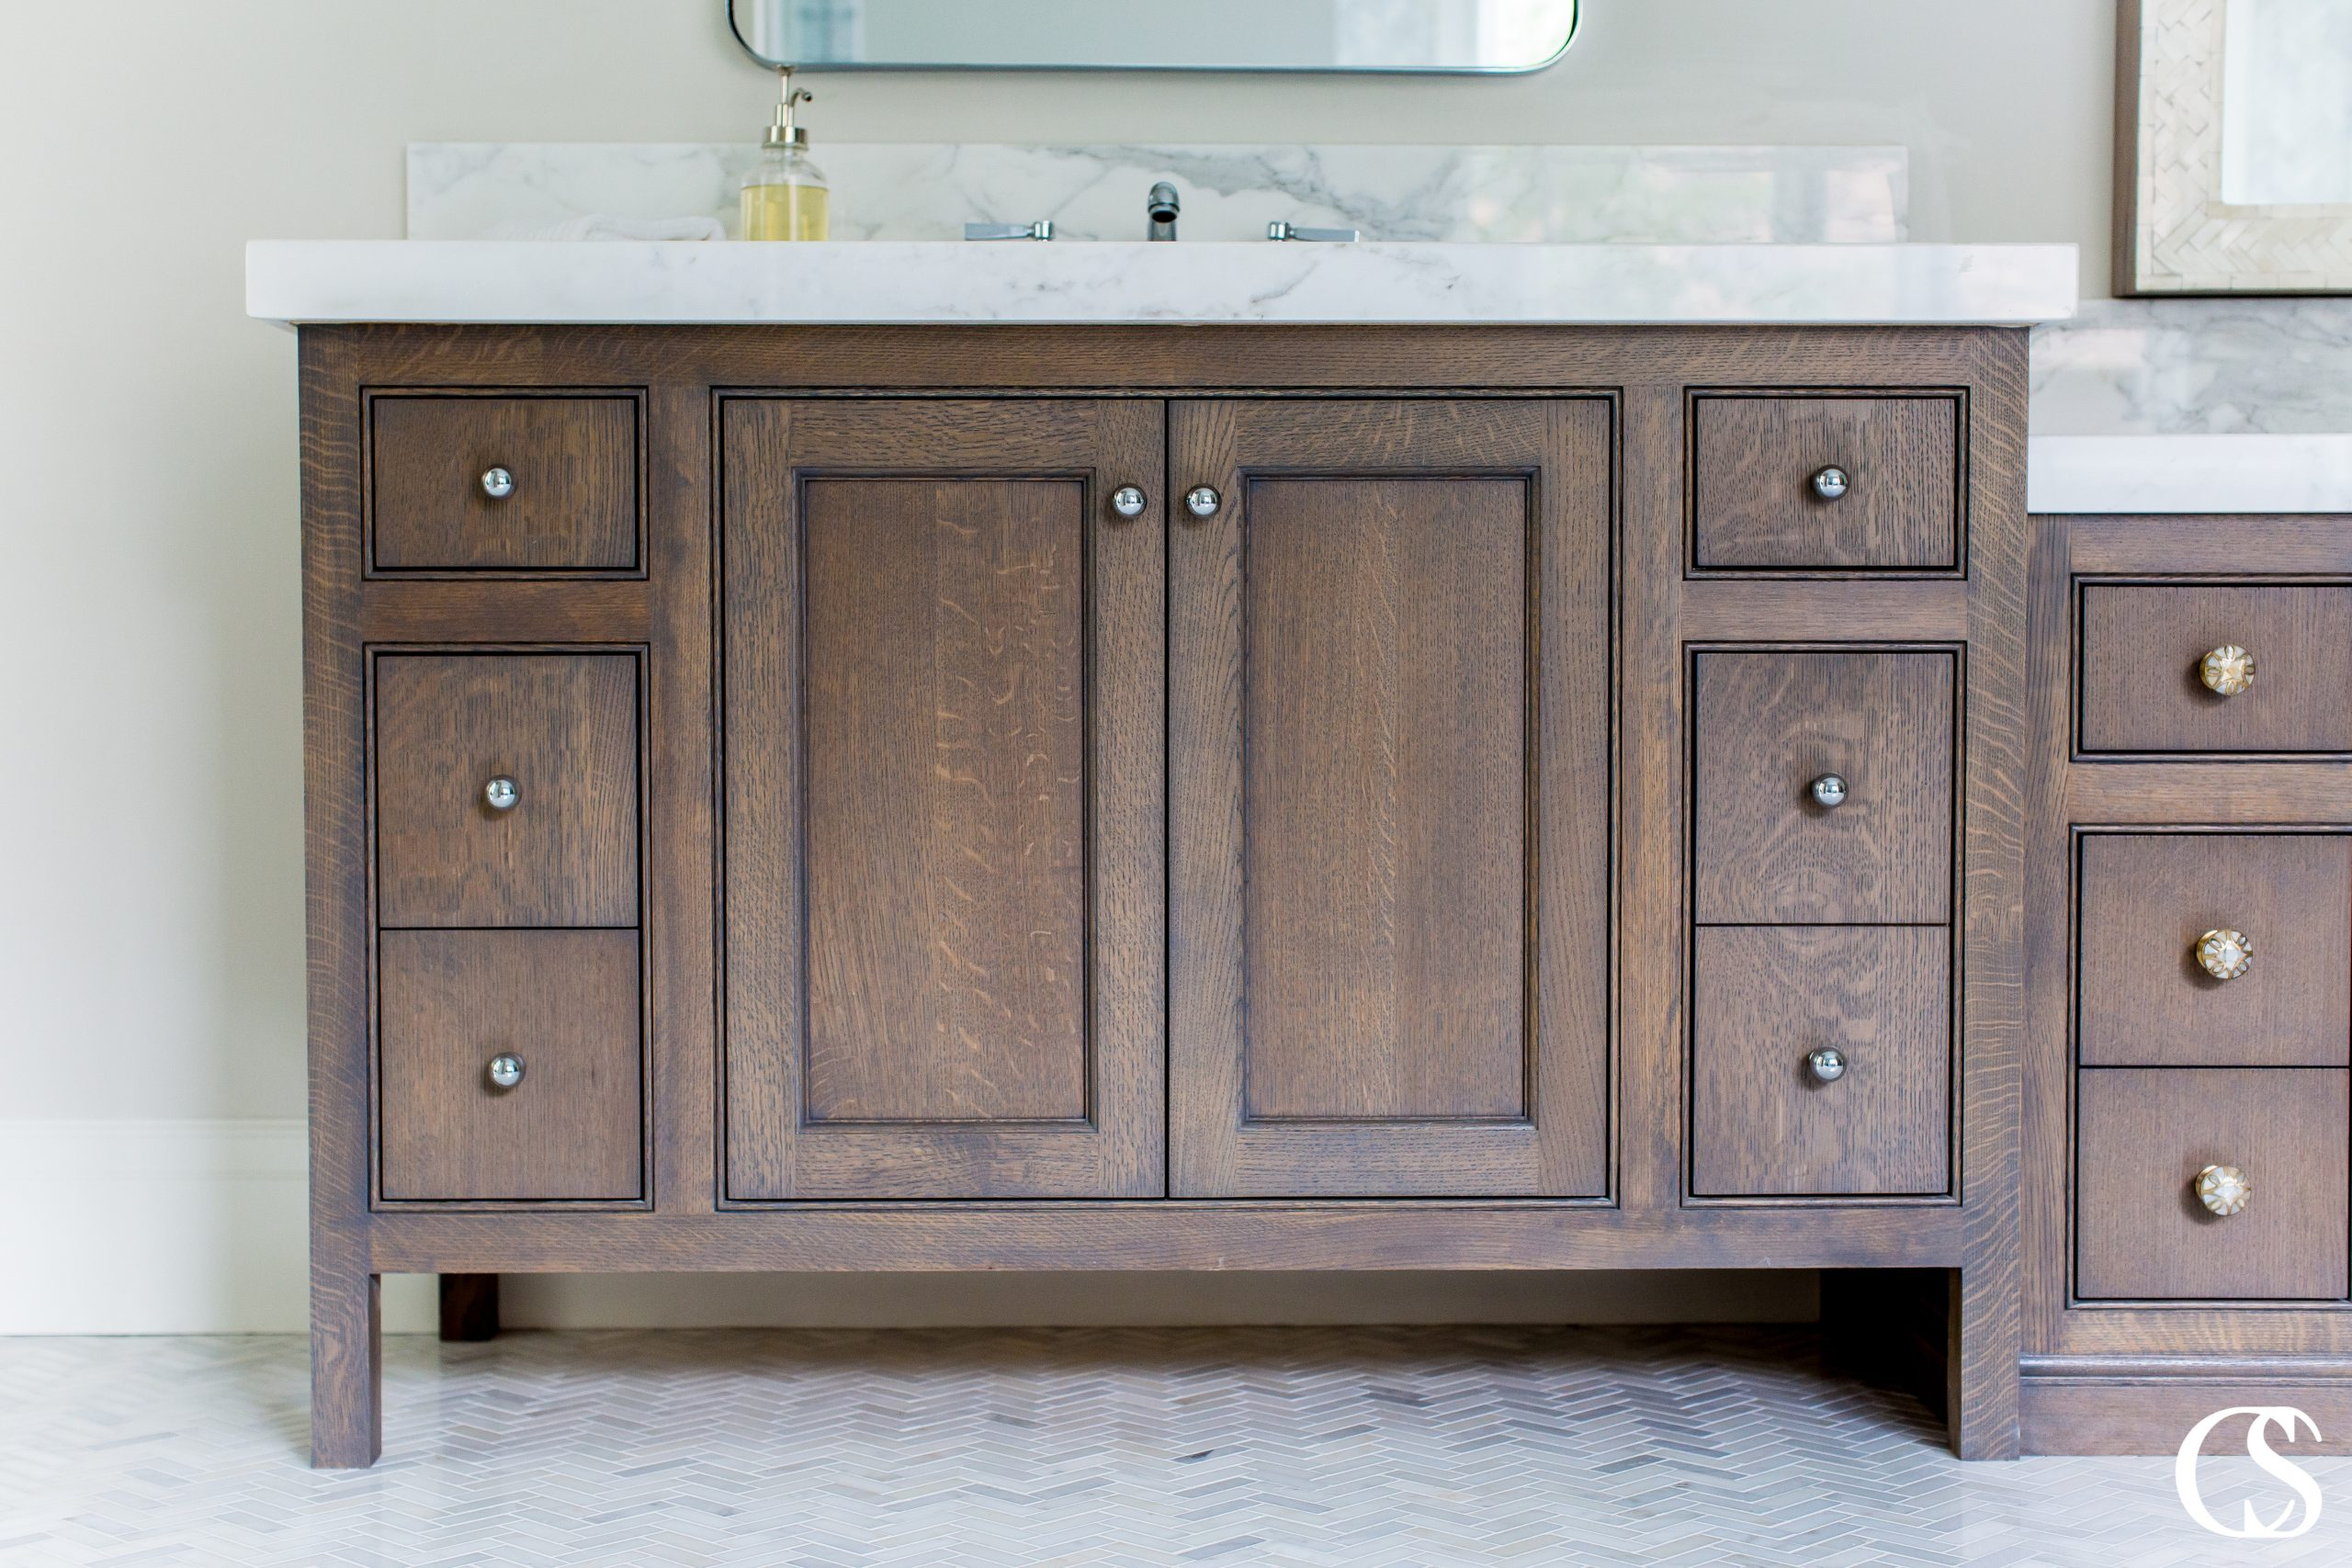 What does the best bathroom cabinet design look like to you? The beaded inset cabinets on this custom vanity frames each drawer and cabinet perfectly to add just enough subtle detail to let you know it was designed with an expert eye.